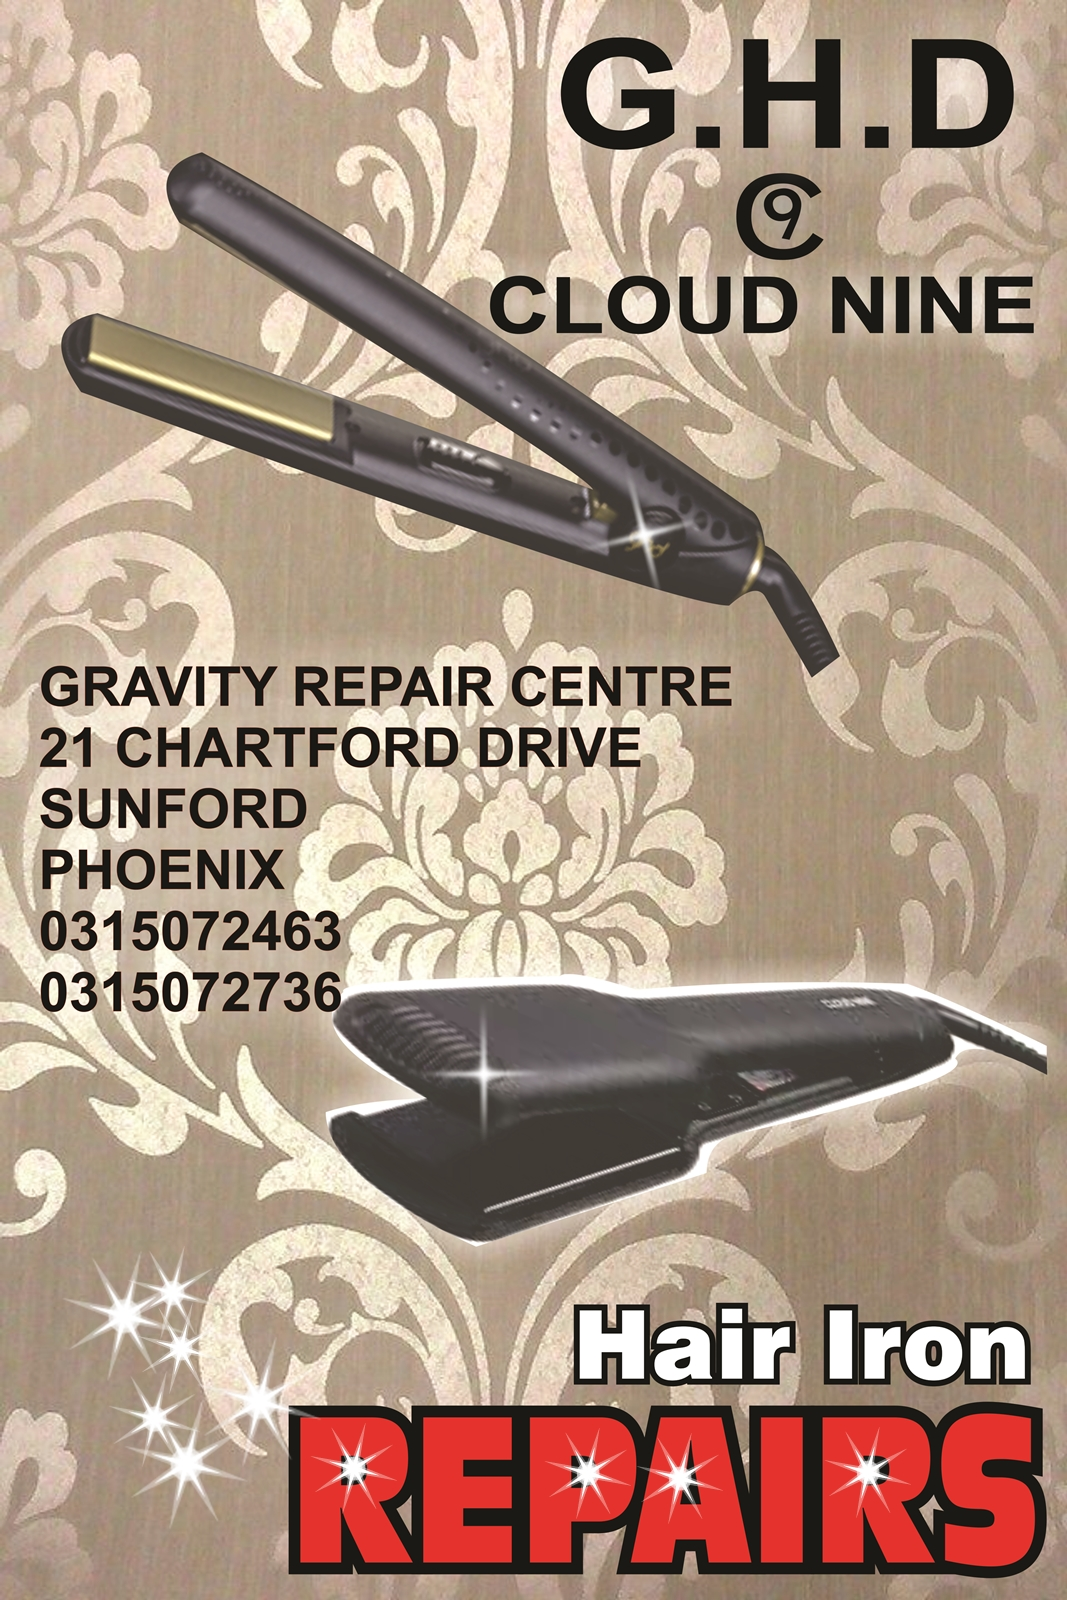 GHD REPAIRS CLOUD 9 REPAIRS GLAMPALM HAIR IRON REPAIRS CLOUDNINE HAIR IRON  REPAIRS BHE HAIR IRONS SPECIALIST